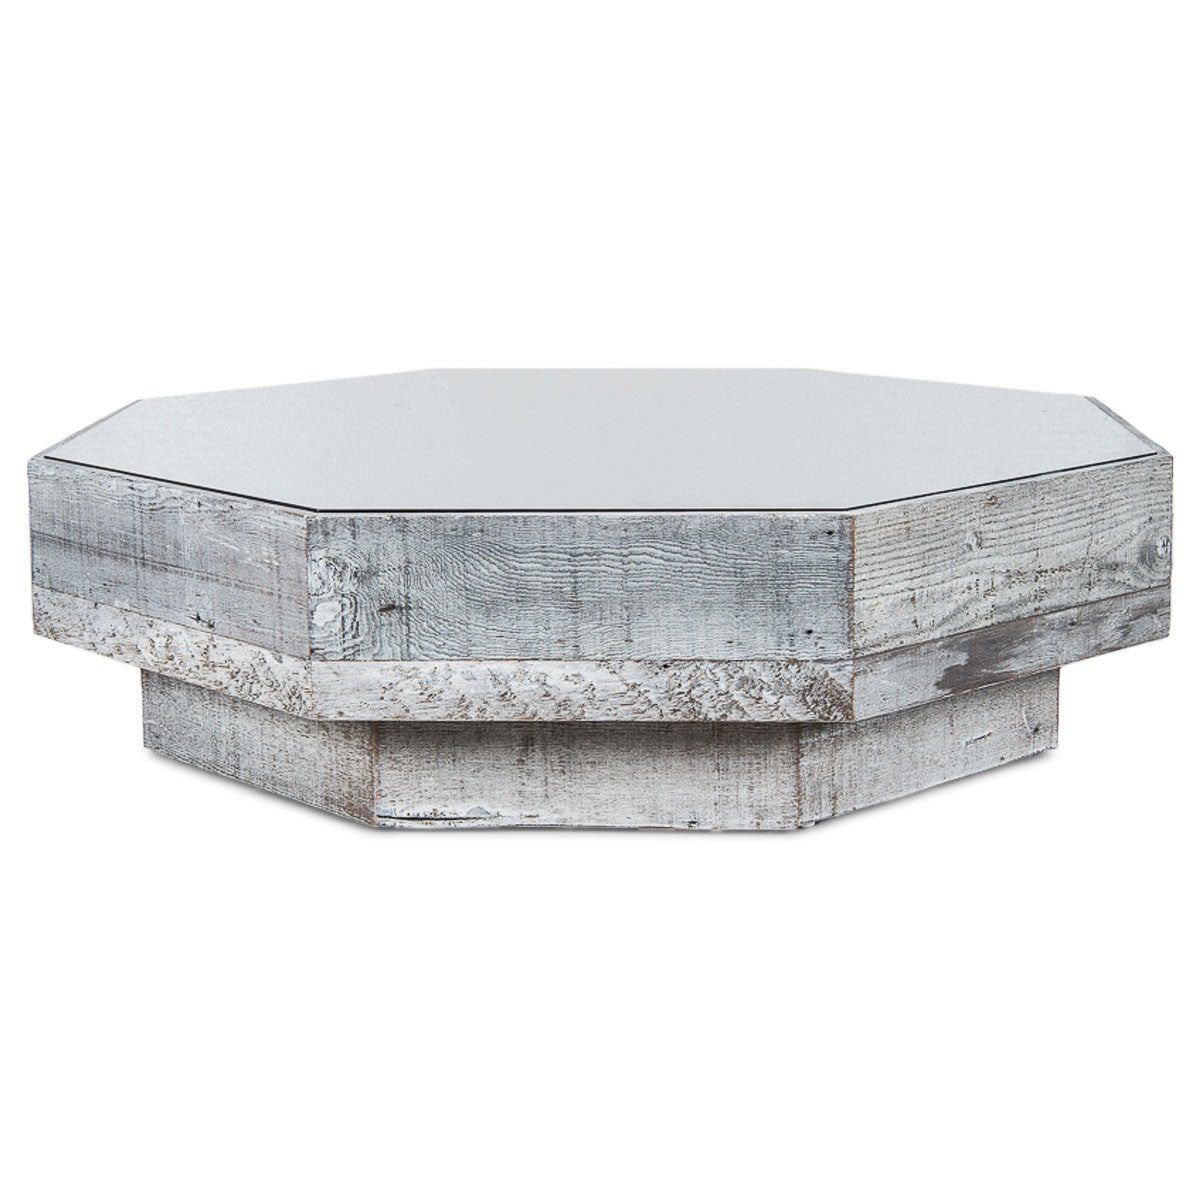 Recycled Wood/Grey Glass Octagon Coffee Table - ModShop1.com